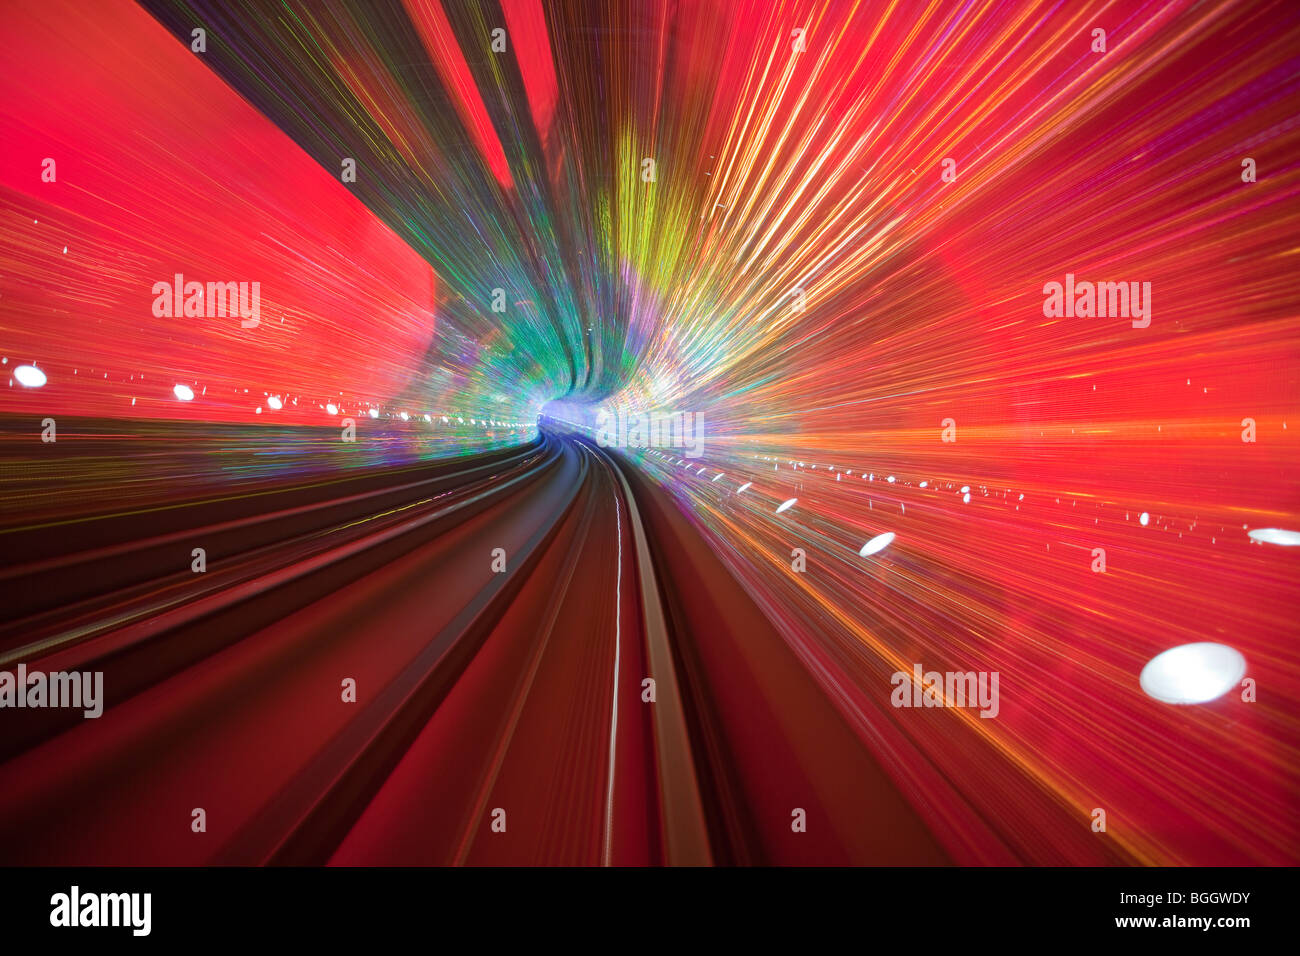 abstract background in a tunnel - Stock Image